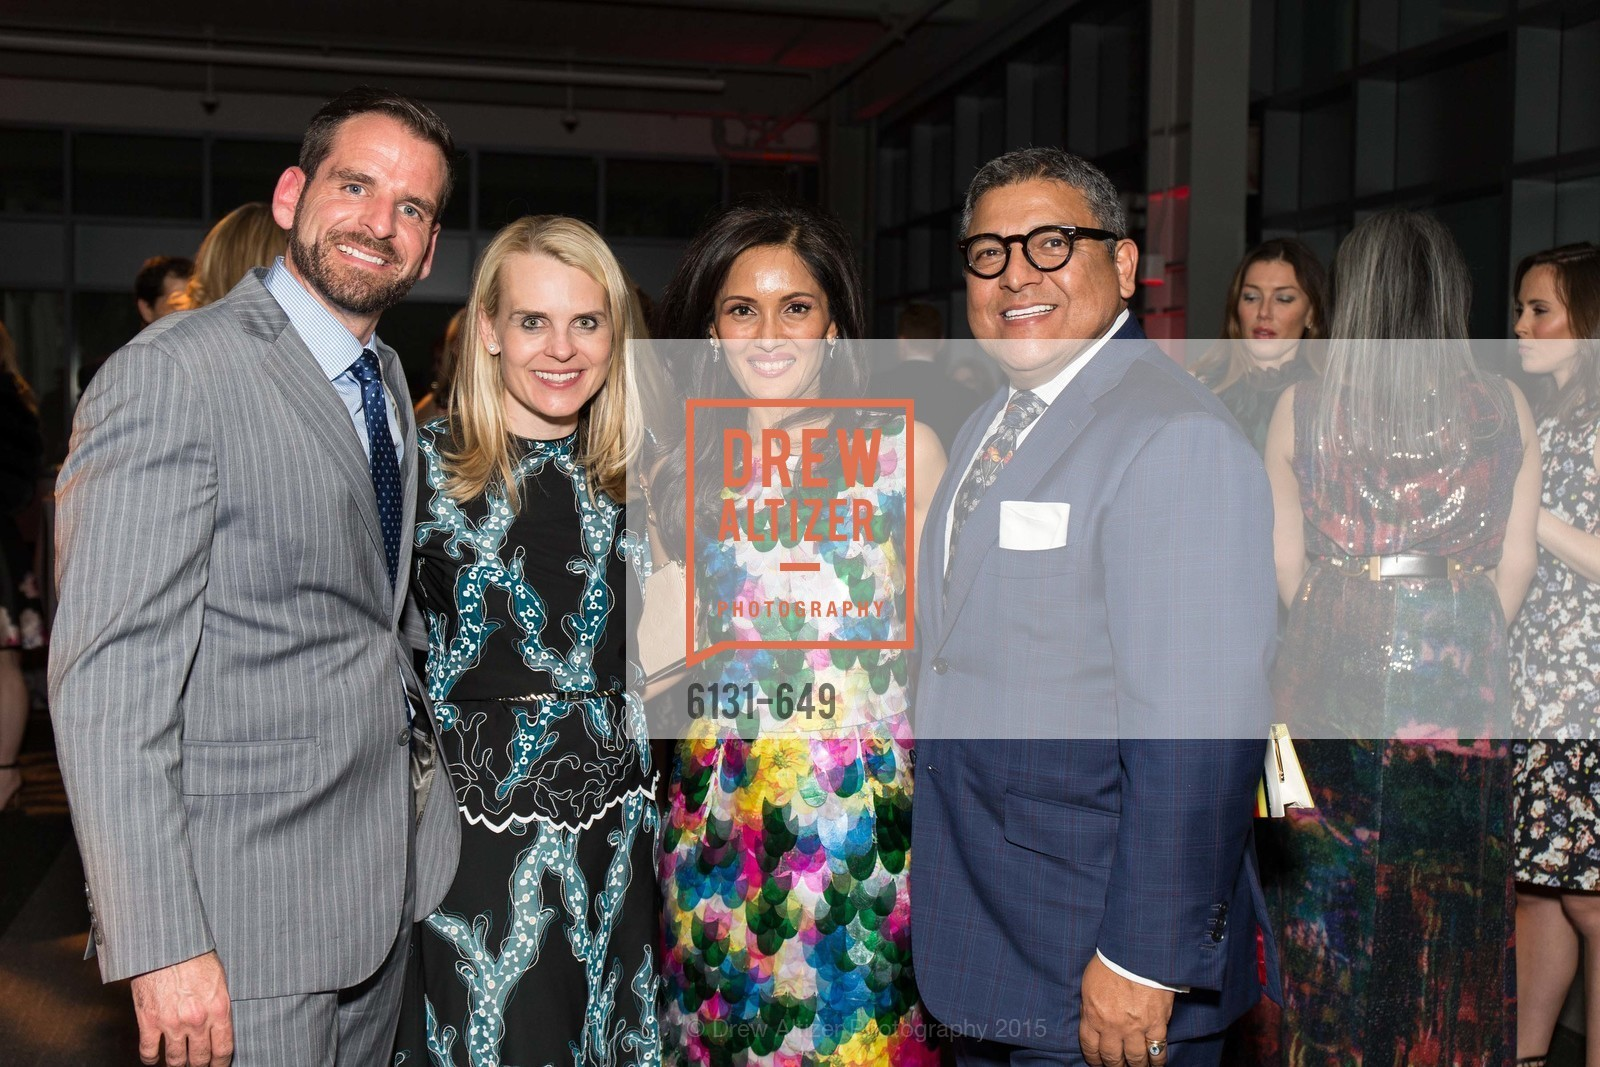 Ryan Williams, Jane Mudge, Komal Shah, Riccardo Benavides, Fashion Forward: An Evening with Erdem presented by SF Opera Guild and Saks Fifth Avenue, Pier 27. Pier 27, The Embarcadero, March 25th, 2015,Drew Altizer, Drew Altizer Photography, full-service agency, private events, San Francisco photographer, photographer california